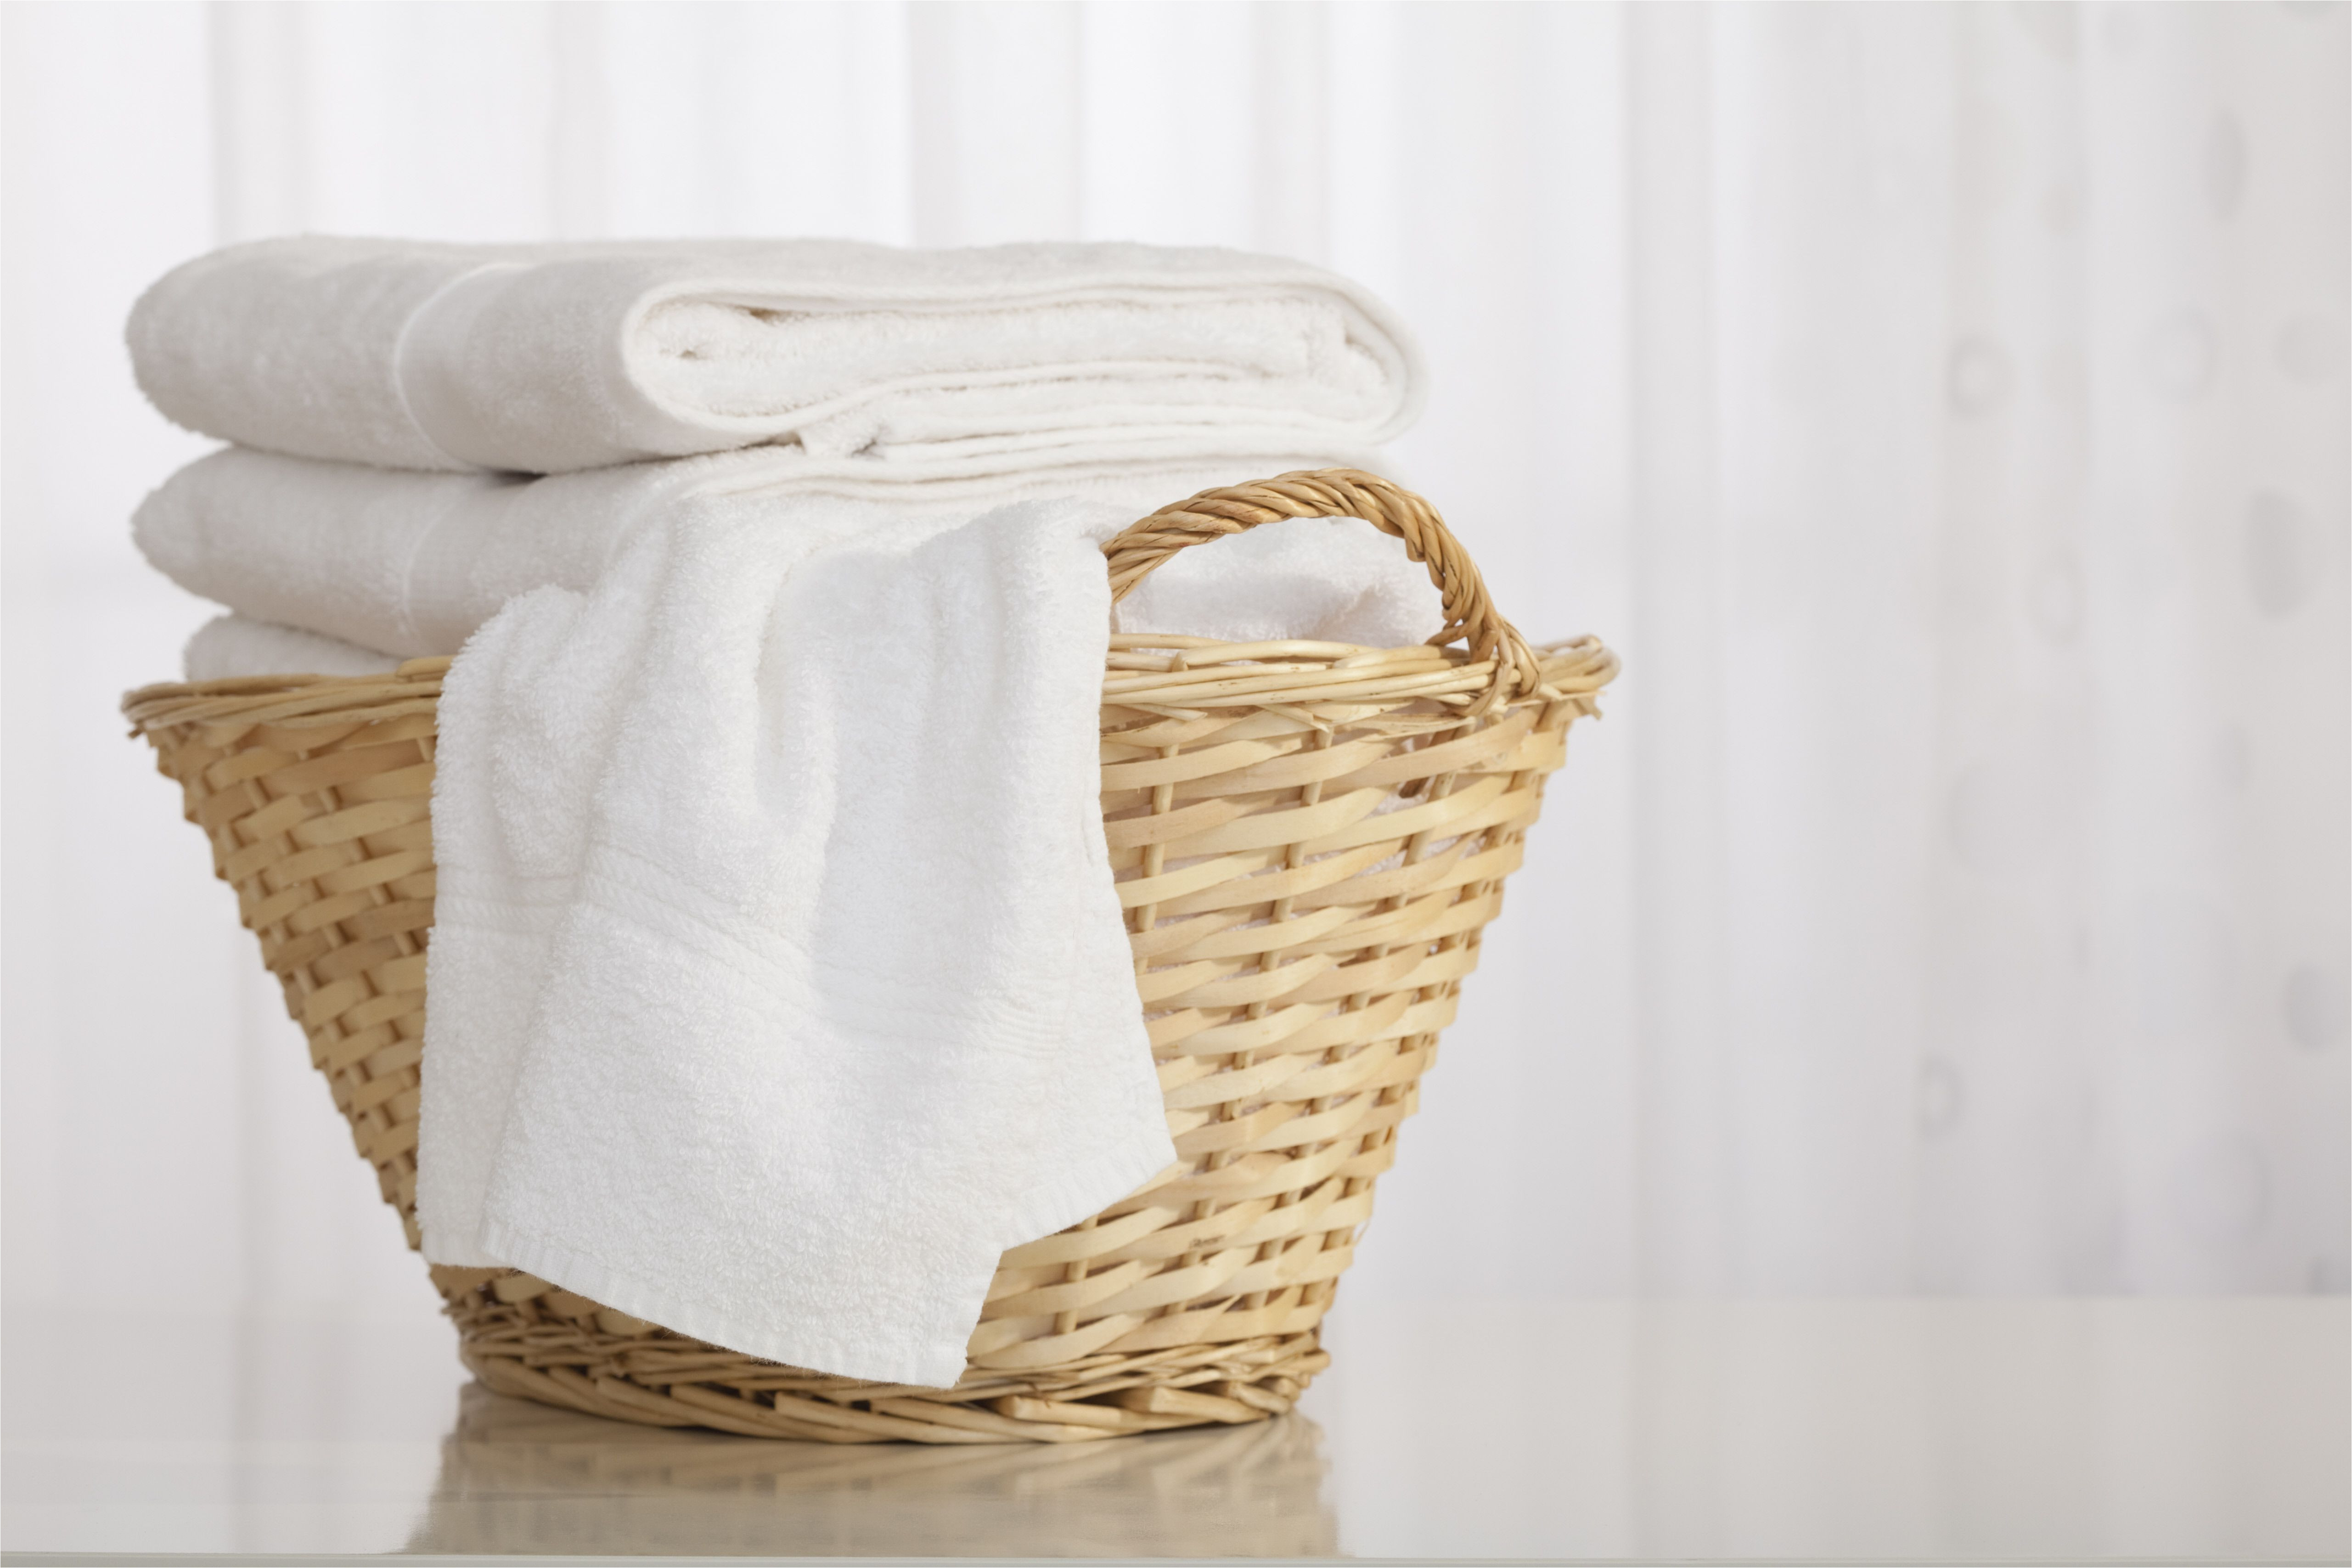 studio shot of stack of white towels in wicker basket 152892922 59d3f219054ad90010dc84c8 jpg